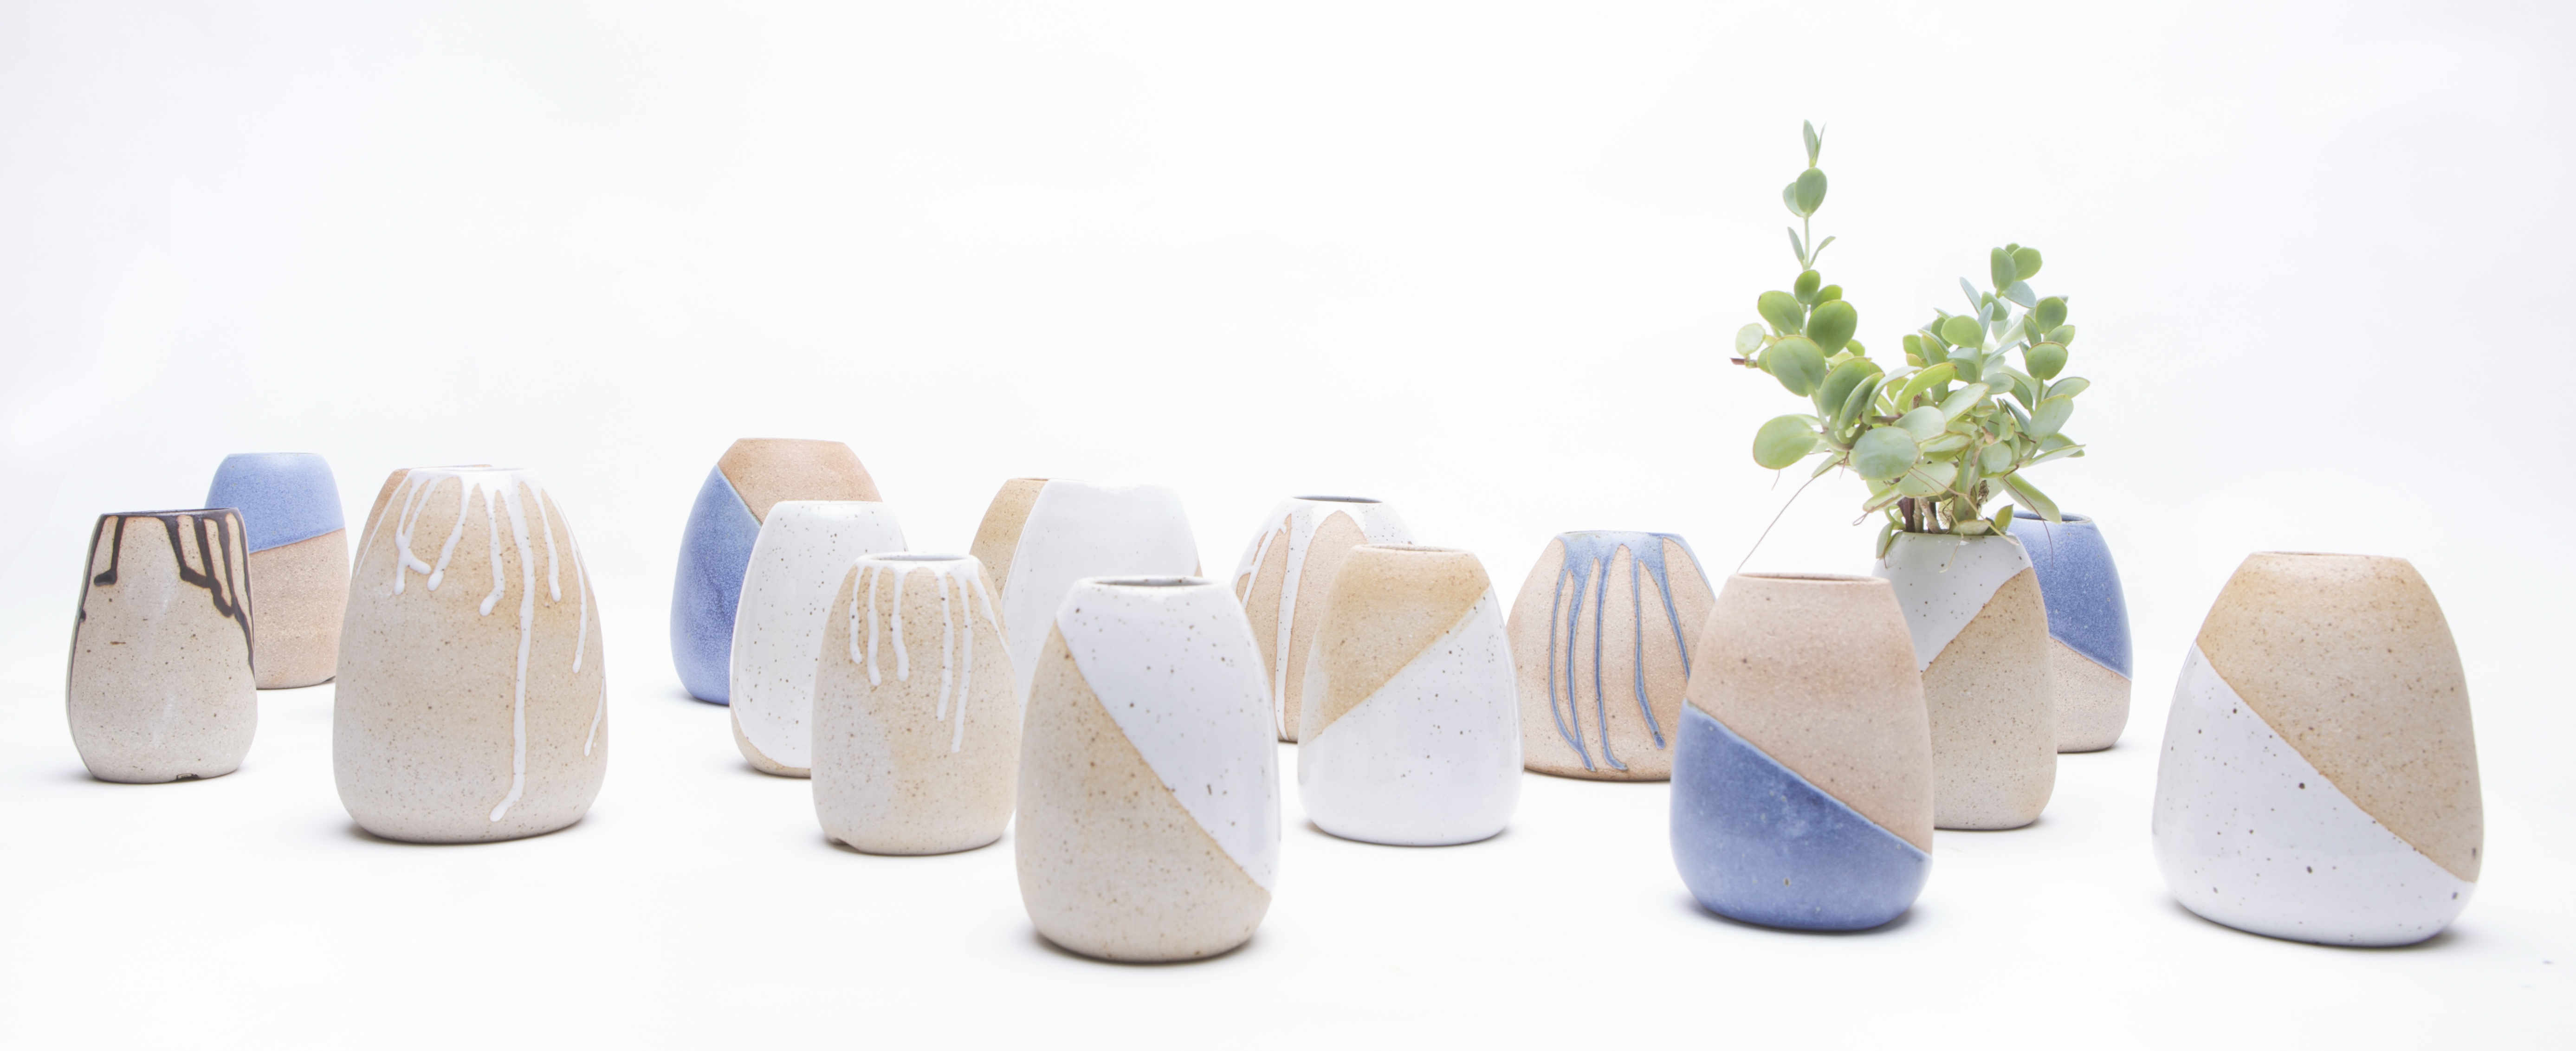 hastings vase collection_variety_